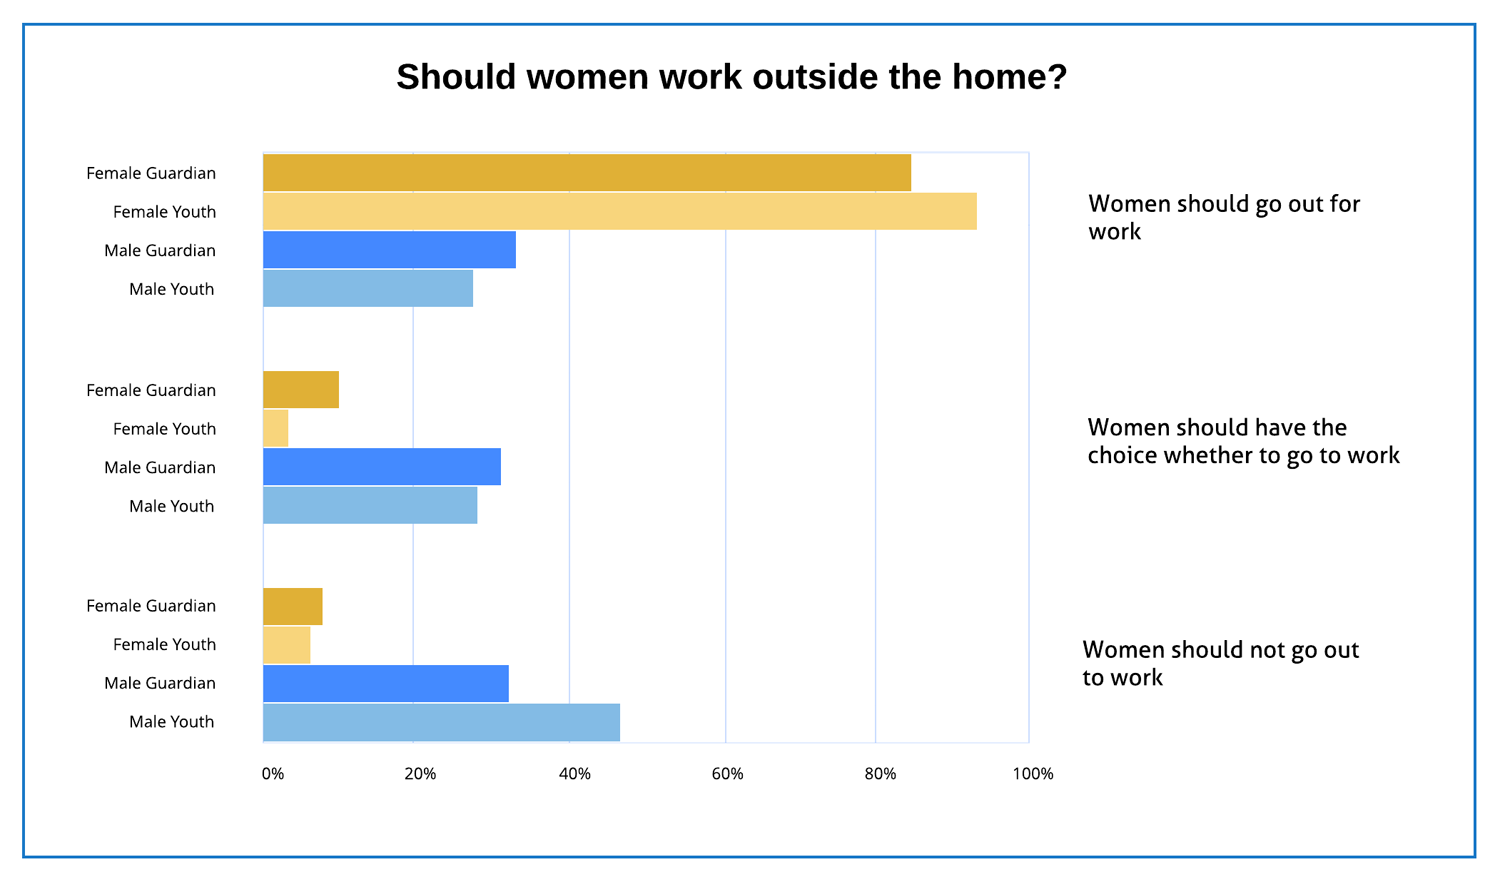 Chart: Should women work outside the home? Survey results.